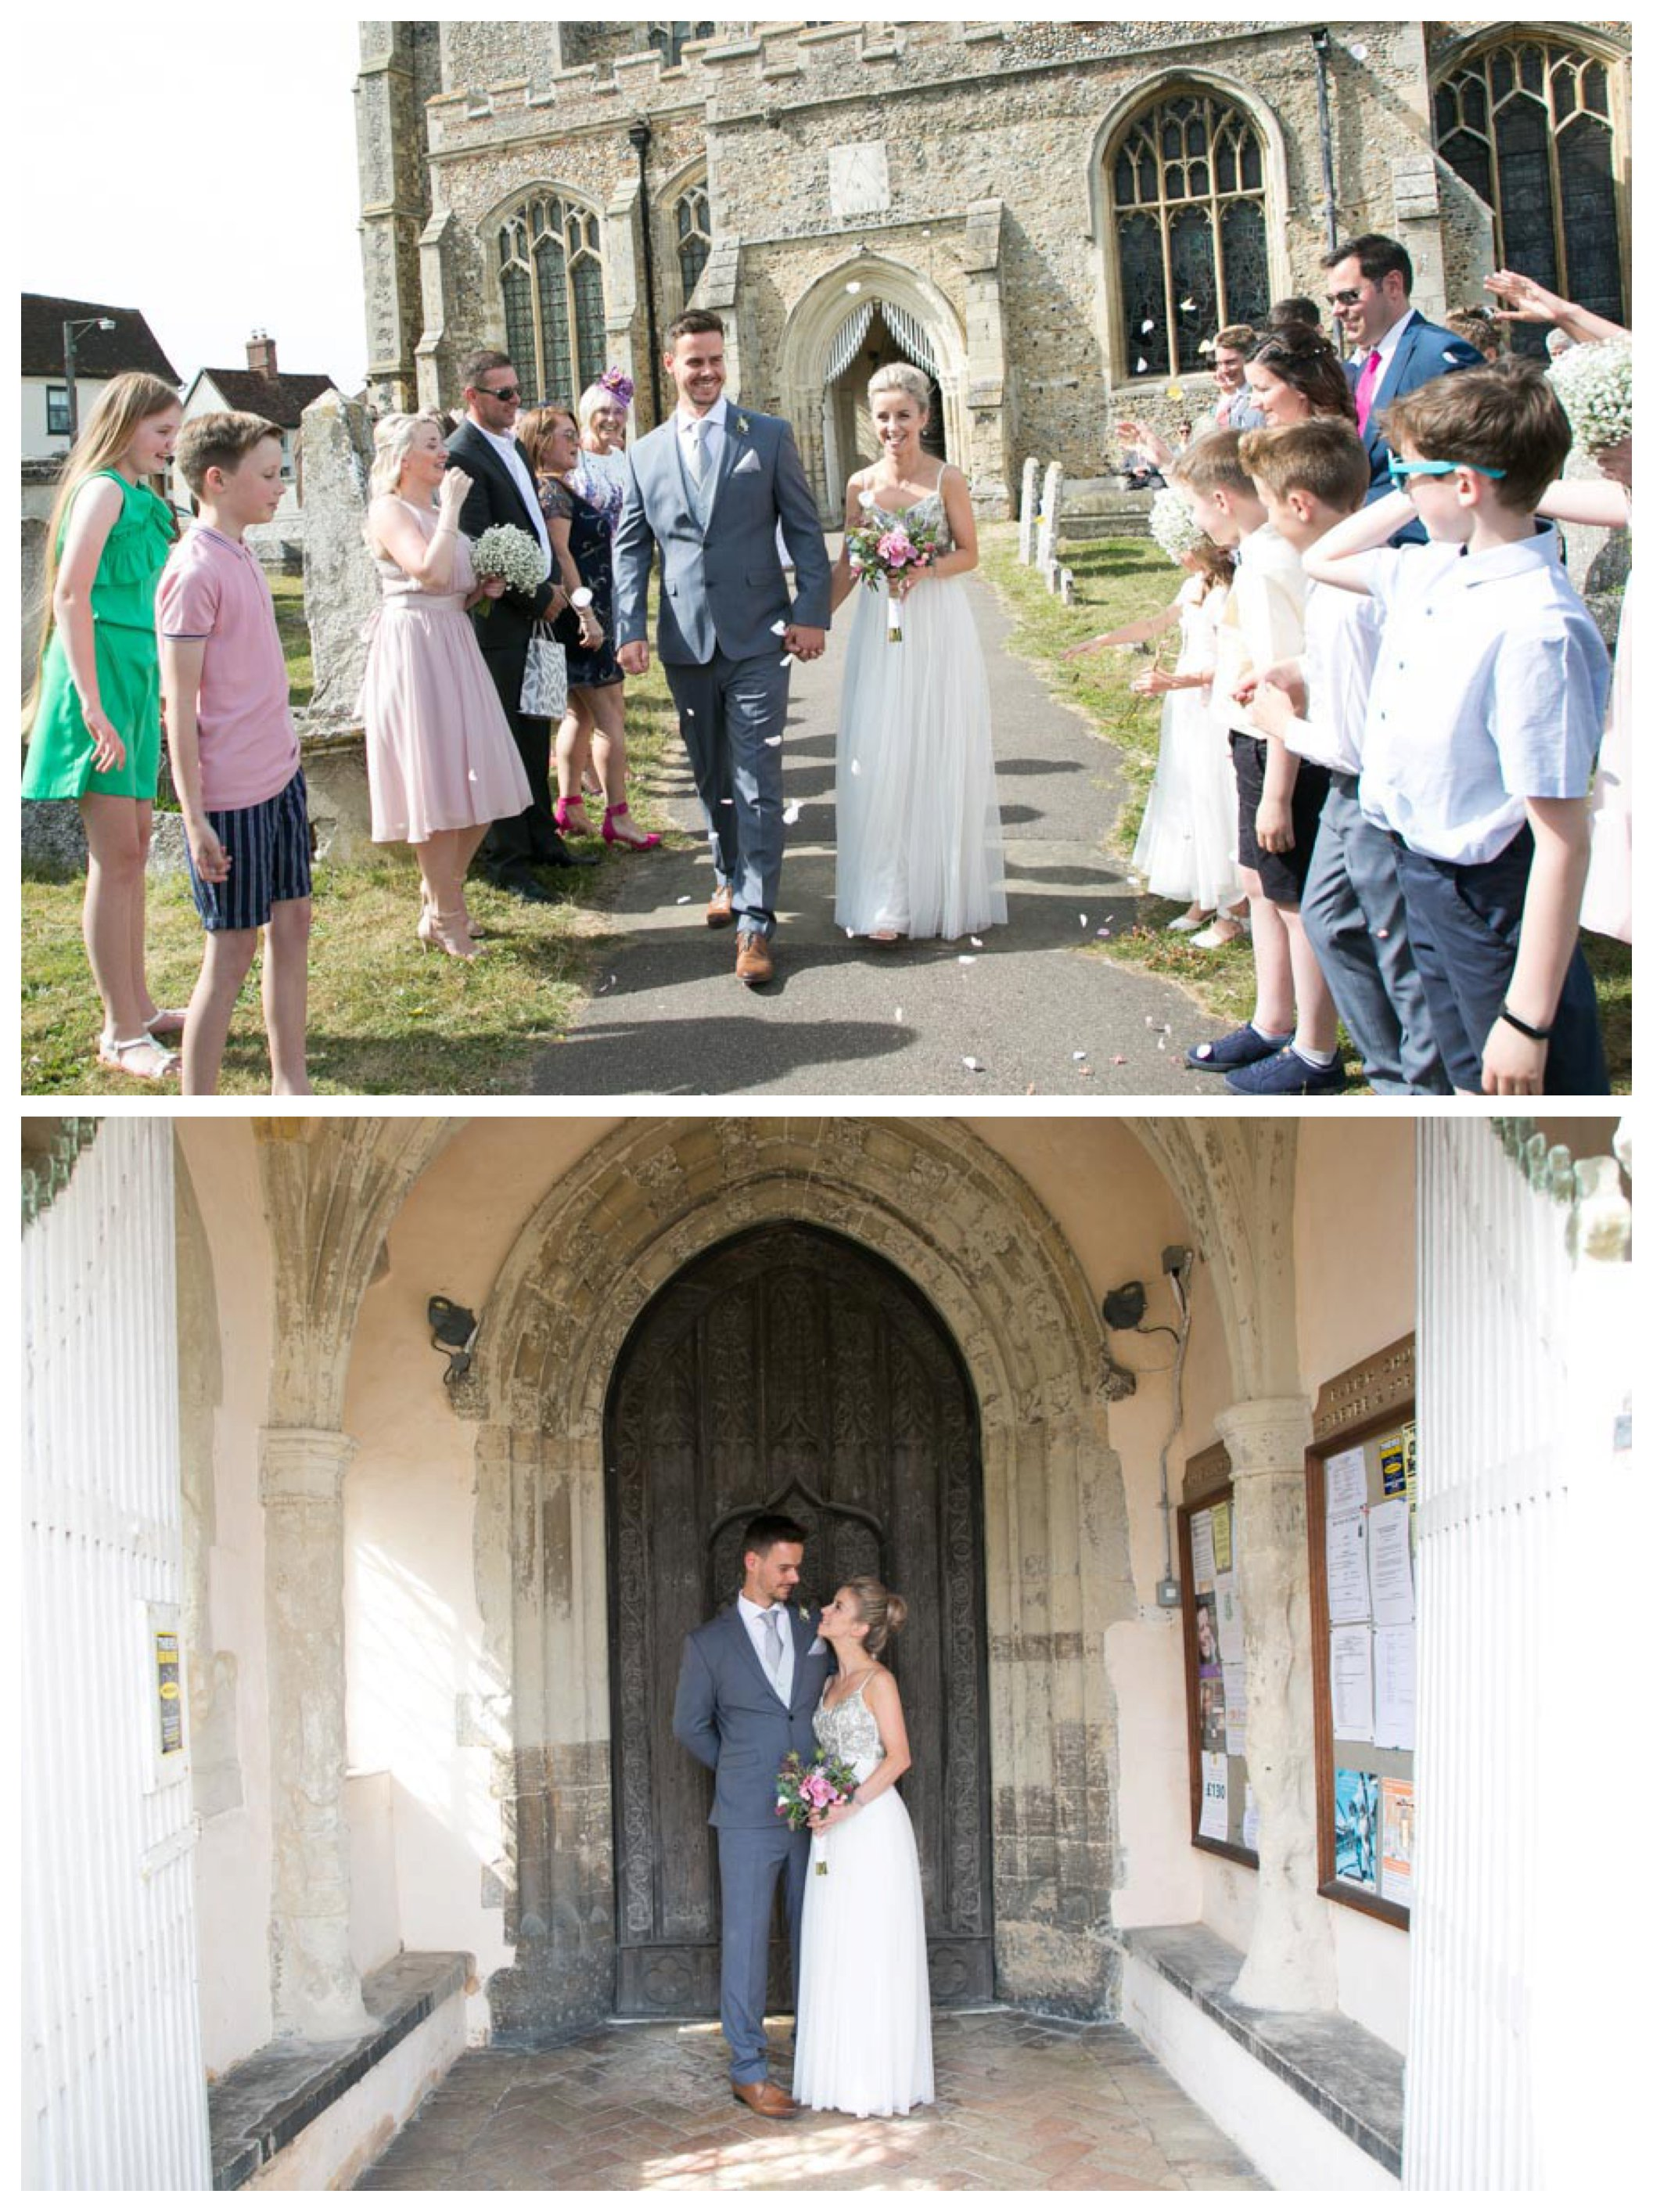 bride and groom walking along path, confetti being thrown, standing in church doorway